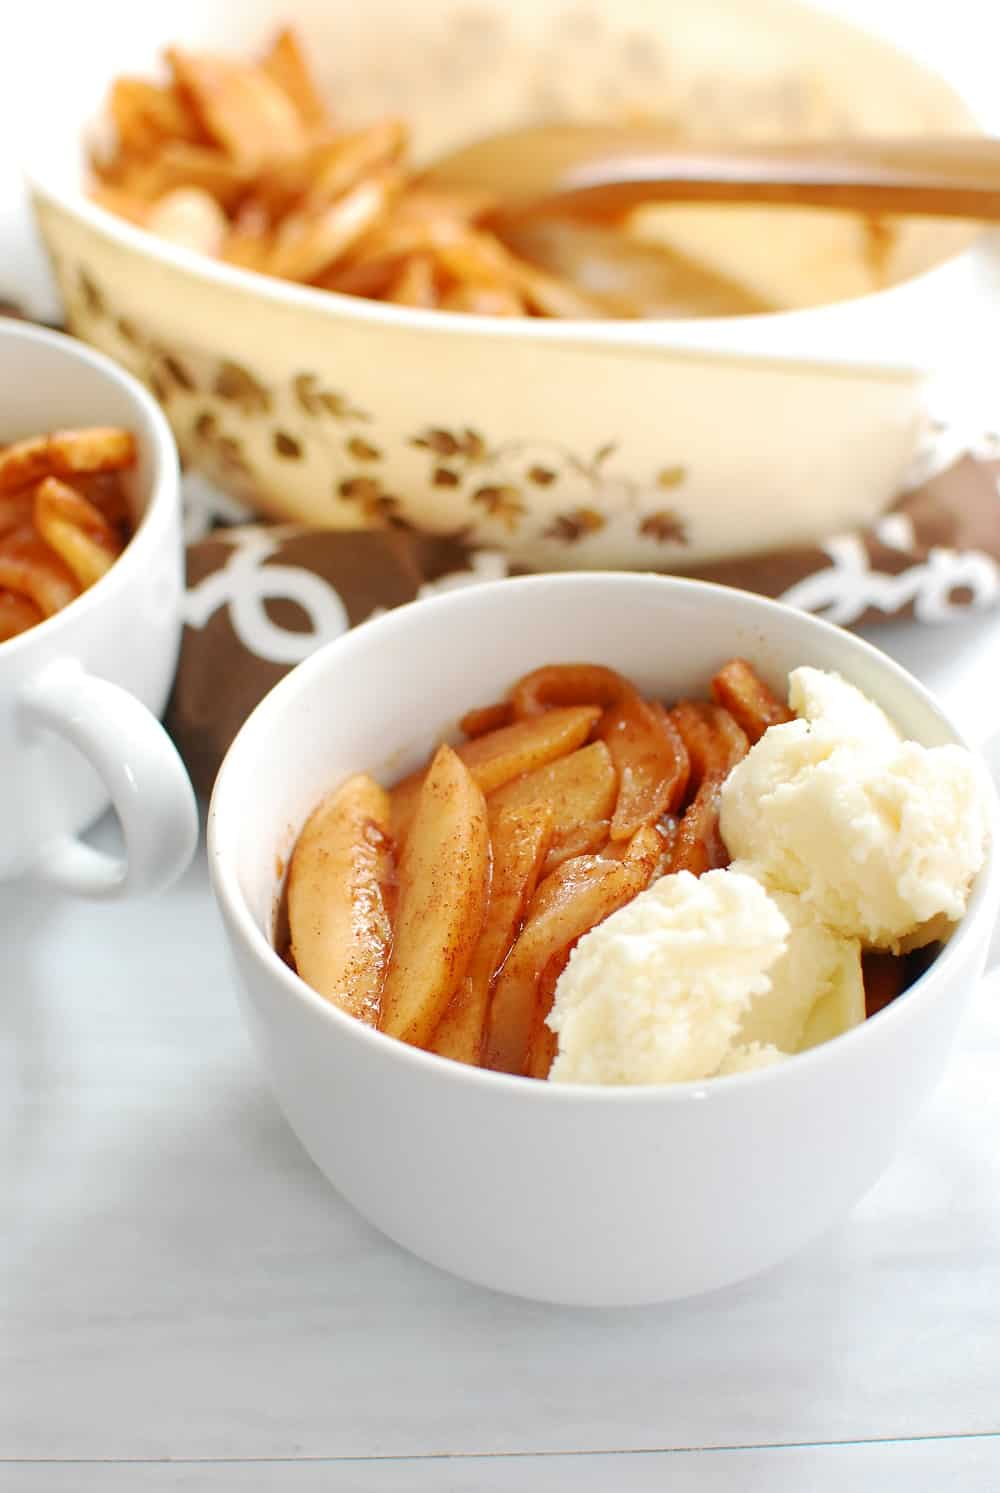 Baked cinnamon apples topped with coconut ice cream